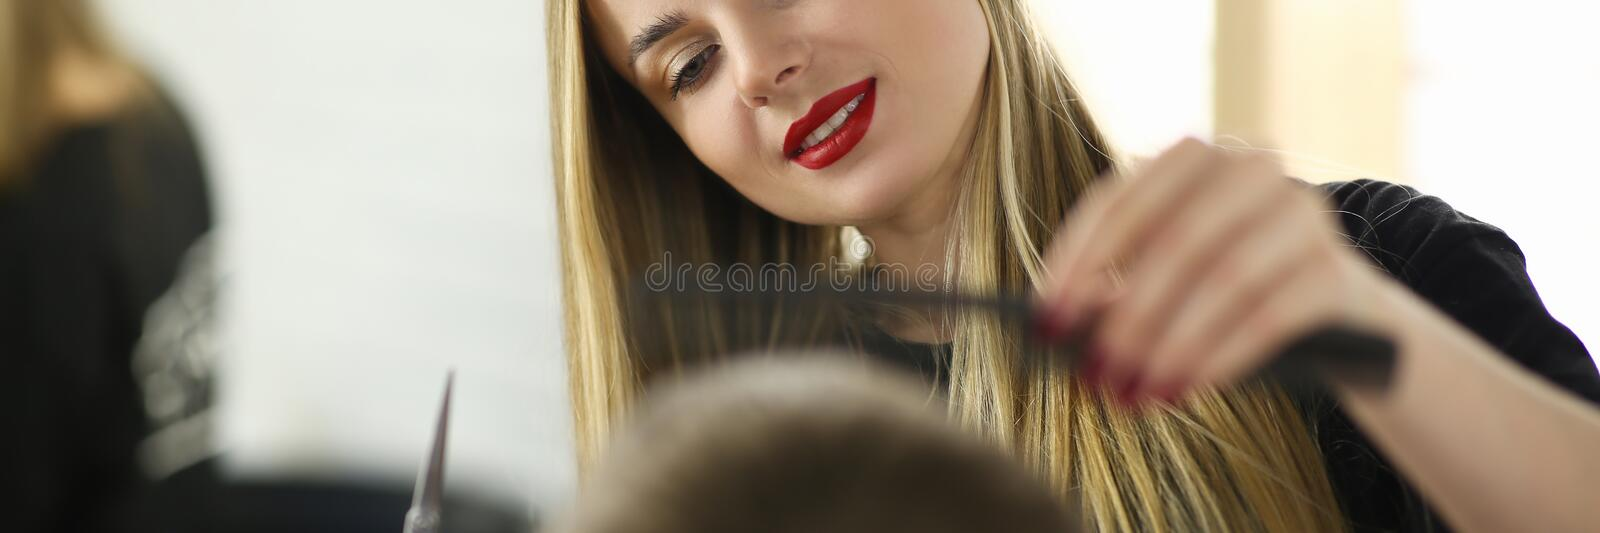 Young Hairdresser Cutting Male in Beauty Salon. Woman Hairstylist with Scissors and Hairbrush Styling Haircut for Client. Professional Beautician Combing Guy stock photo